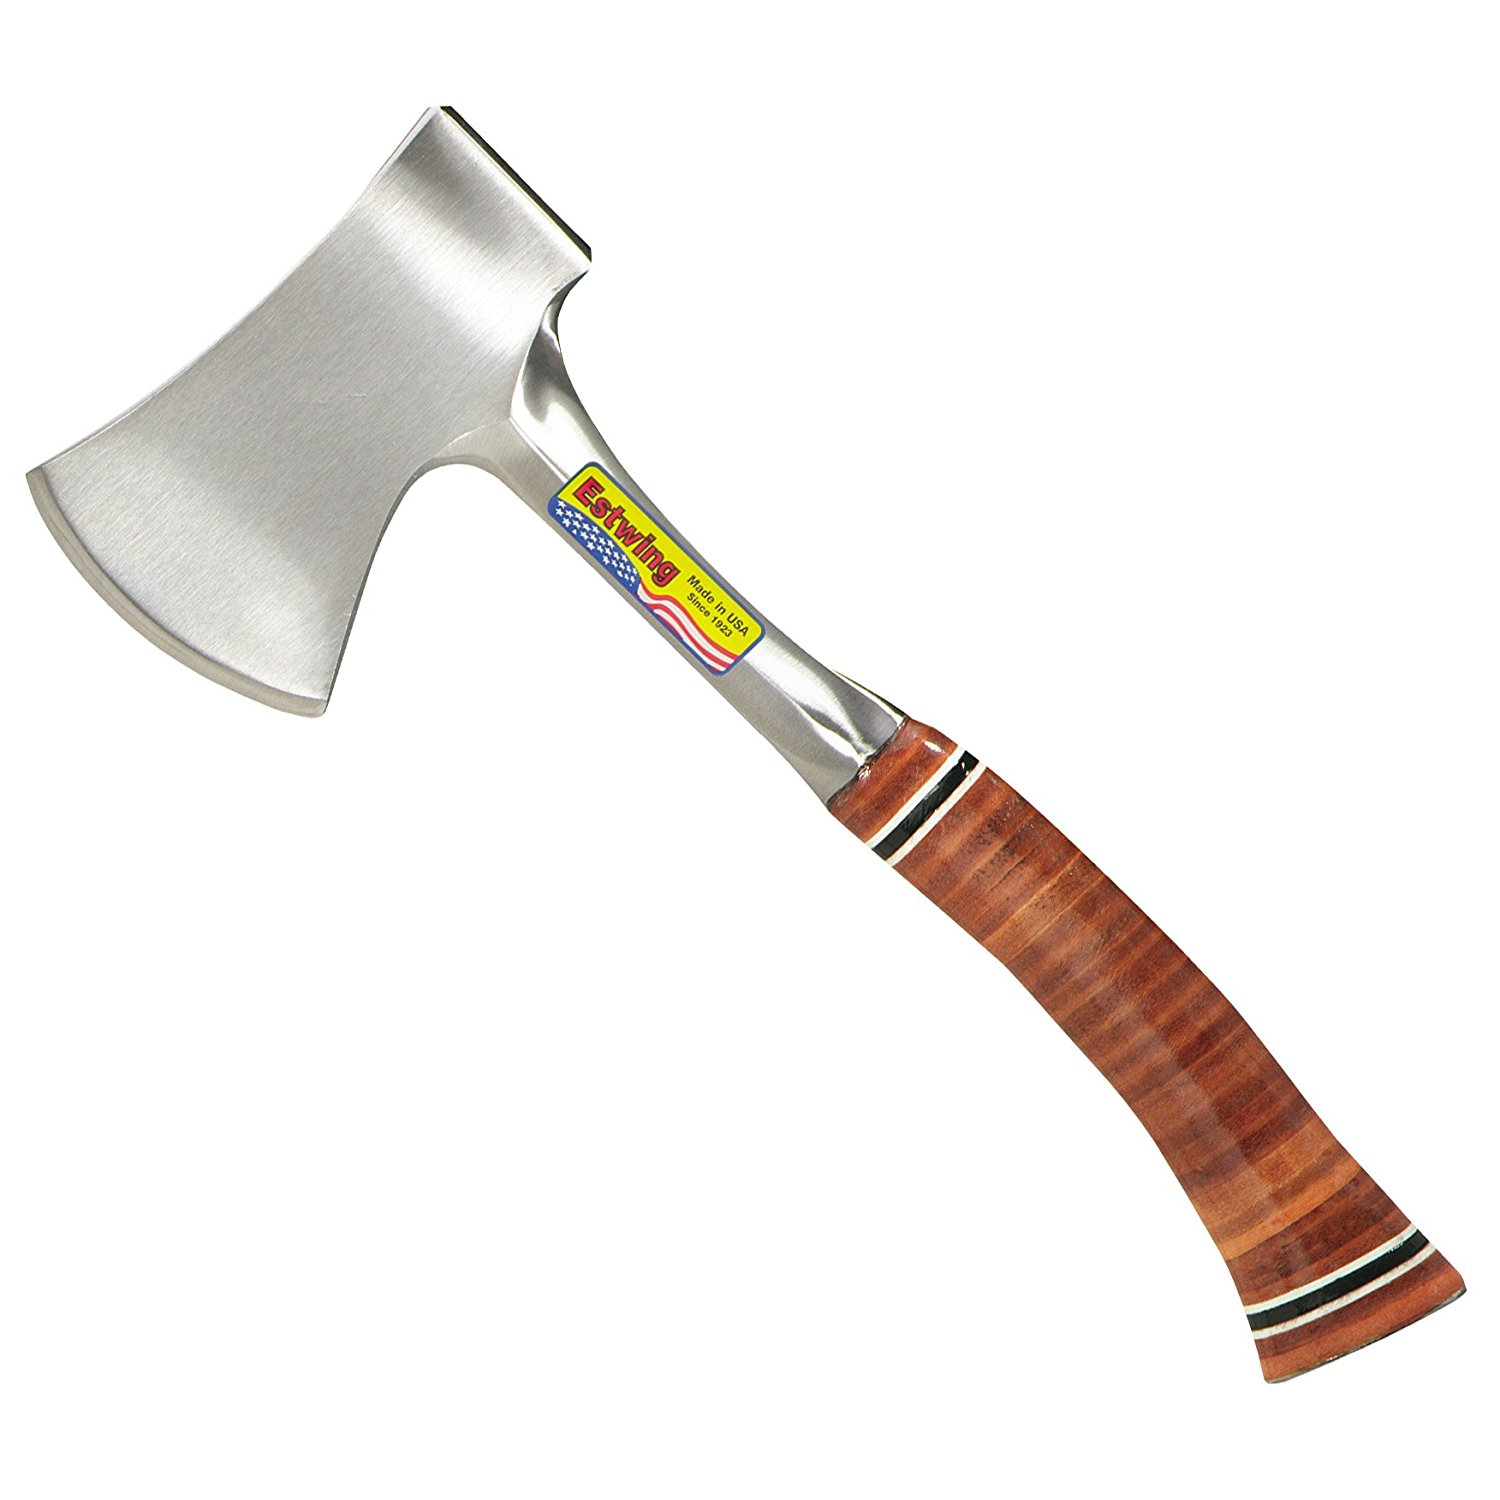 """Estwing Sportsman's Axe 14"""" Camping Hatchet with Forged Steel Construction & Genuine Leather Grip E24A by"""